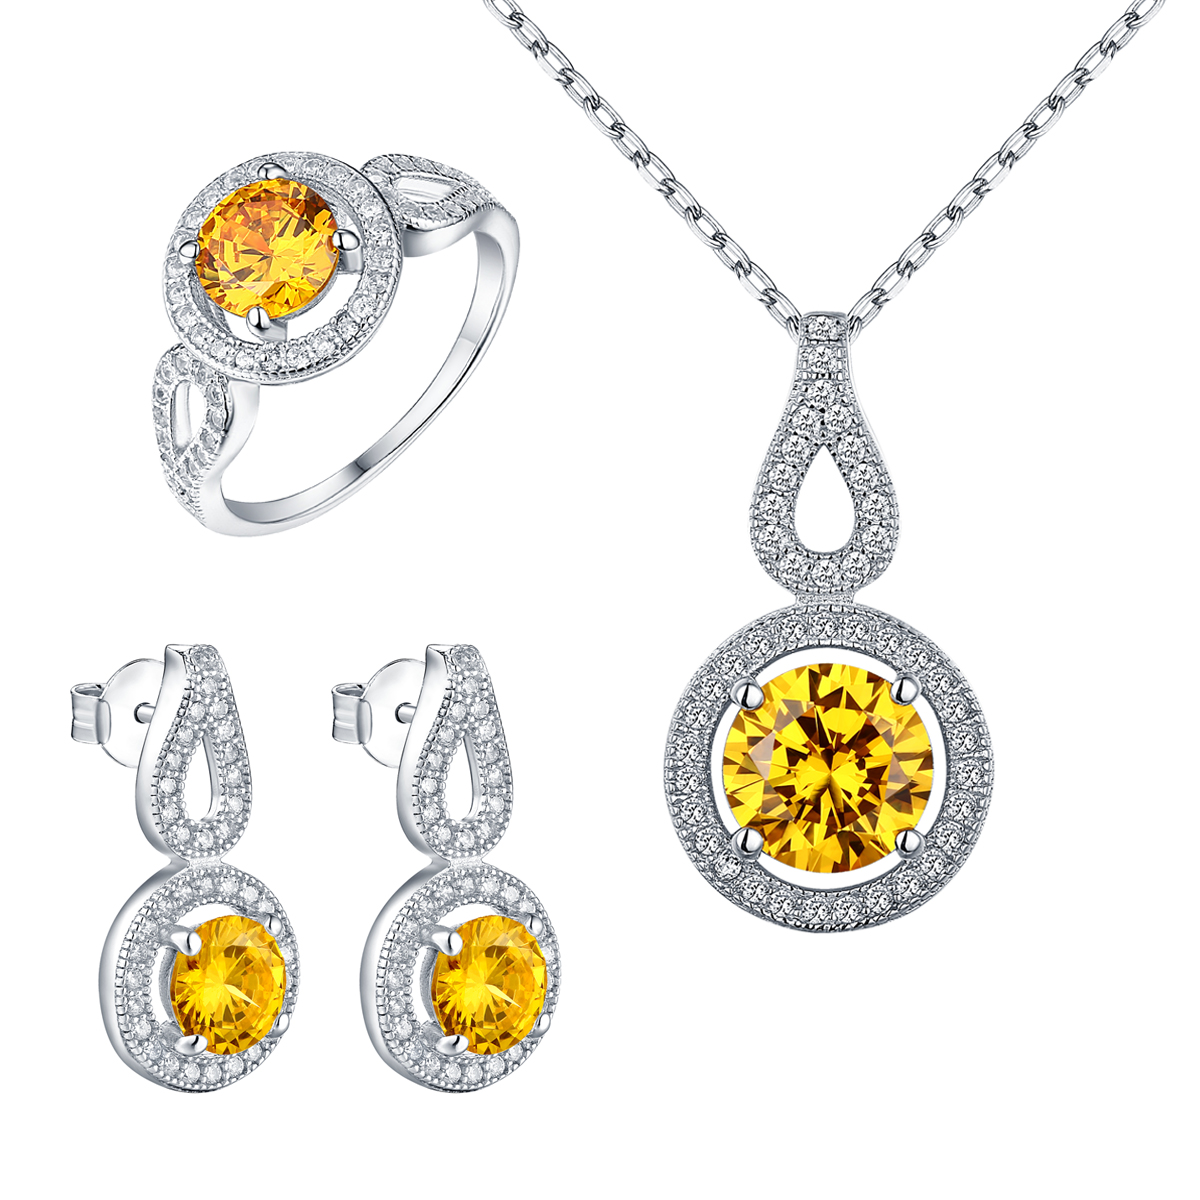 Canary Solitaire Pendant Earrings Set Necklace Ladies Ring Bridal 925 Silver CZ